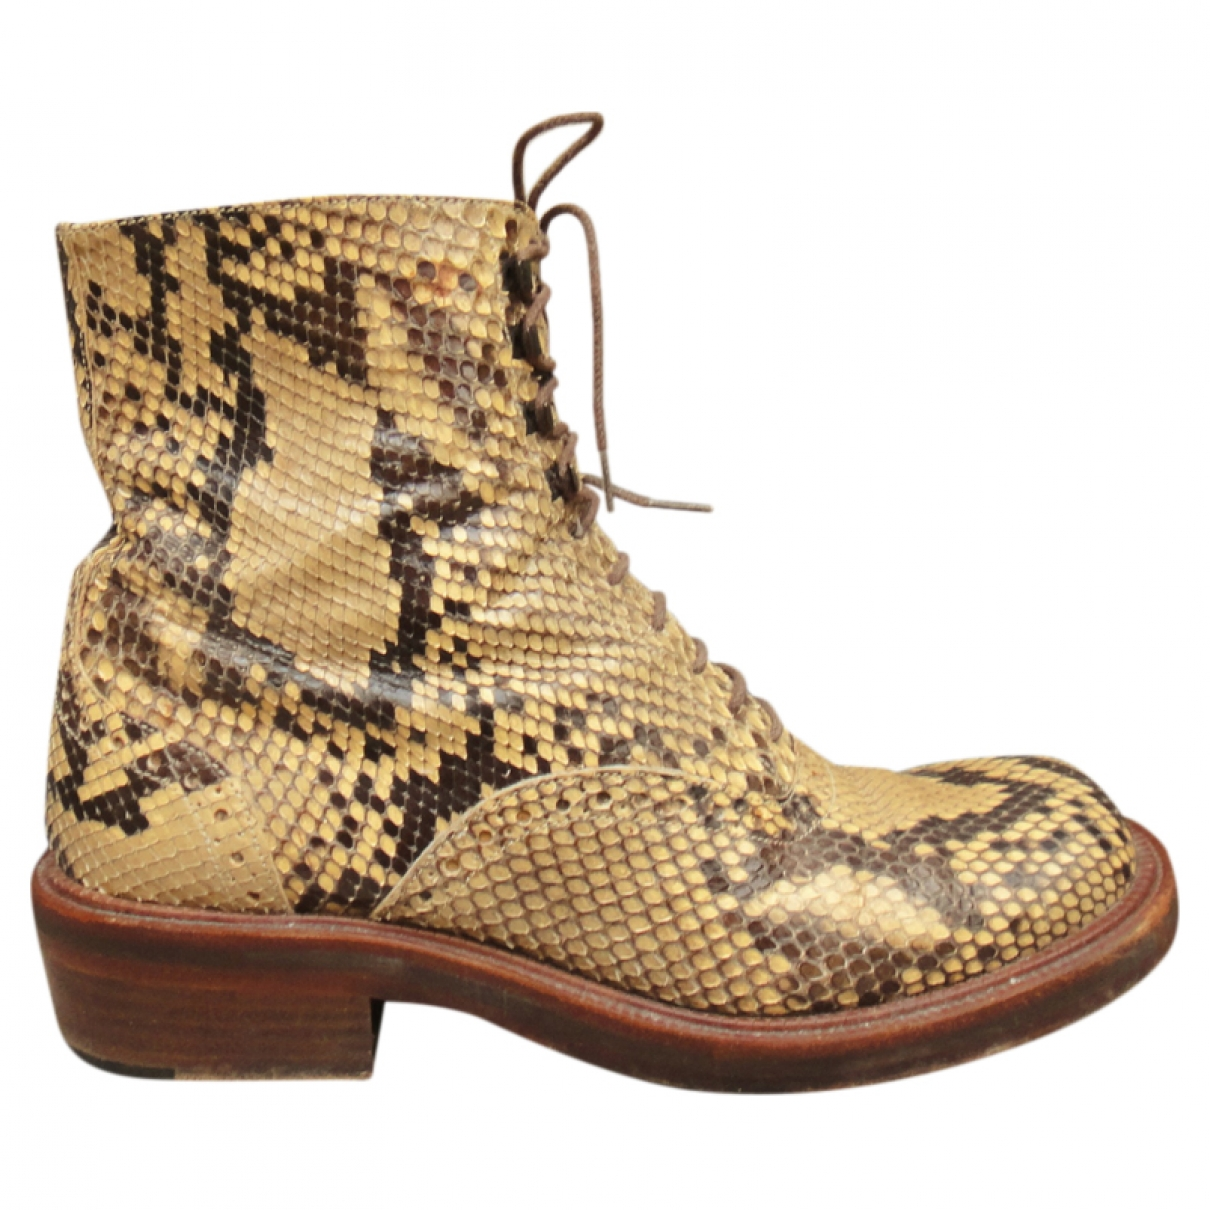 Sartore \N Beige Python Ankle boots for Women 38 EU